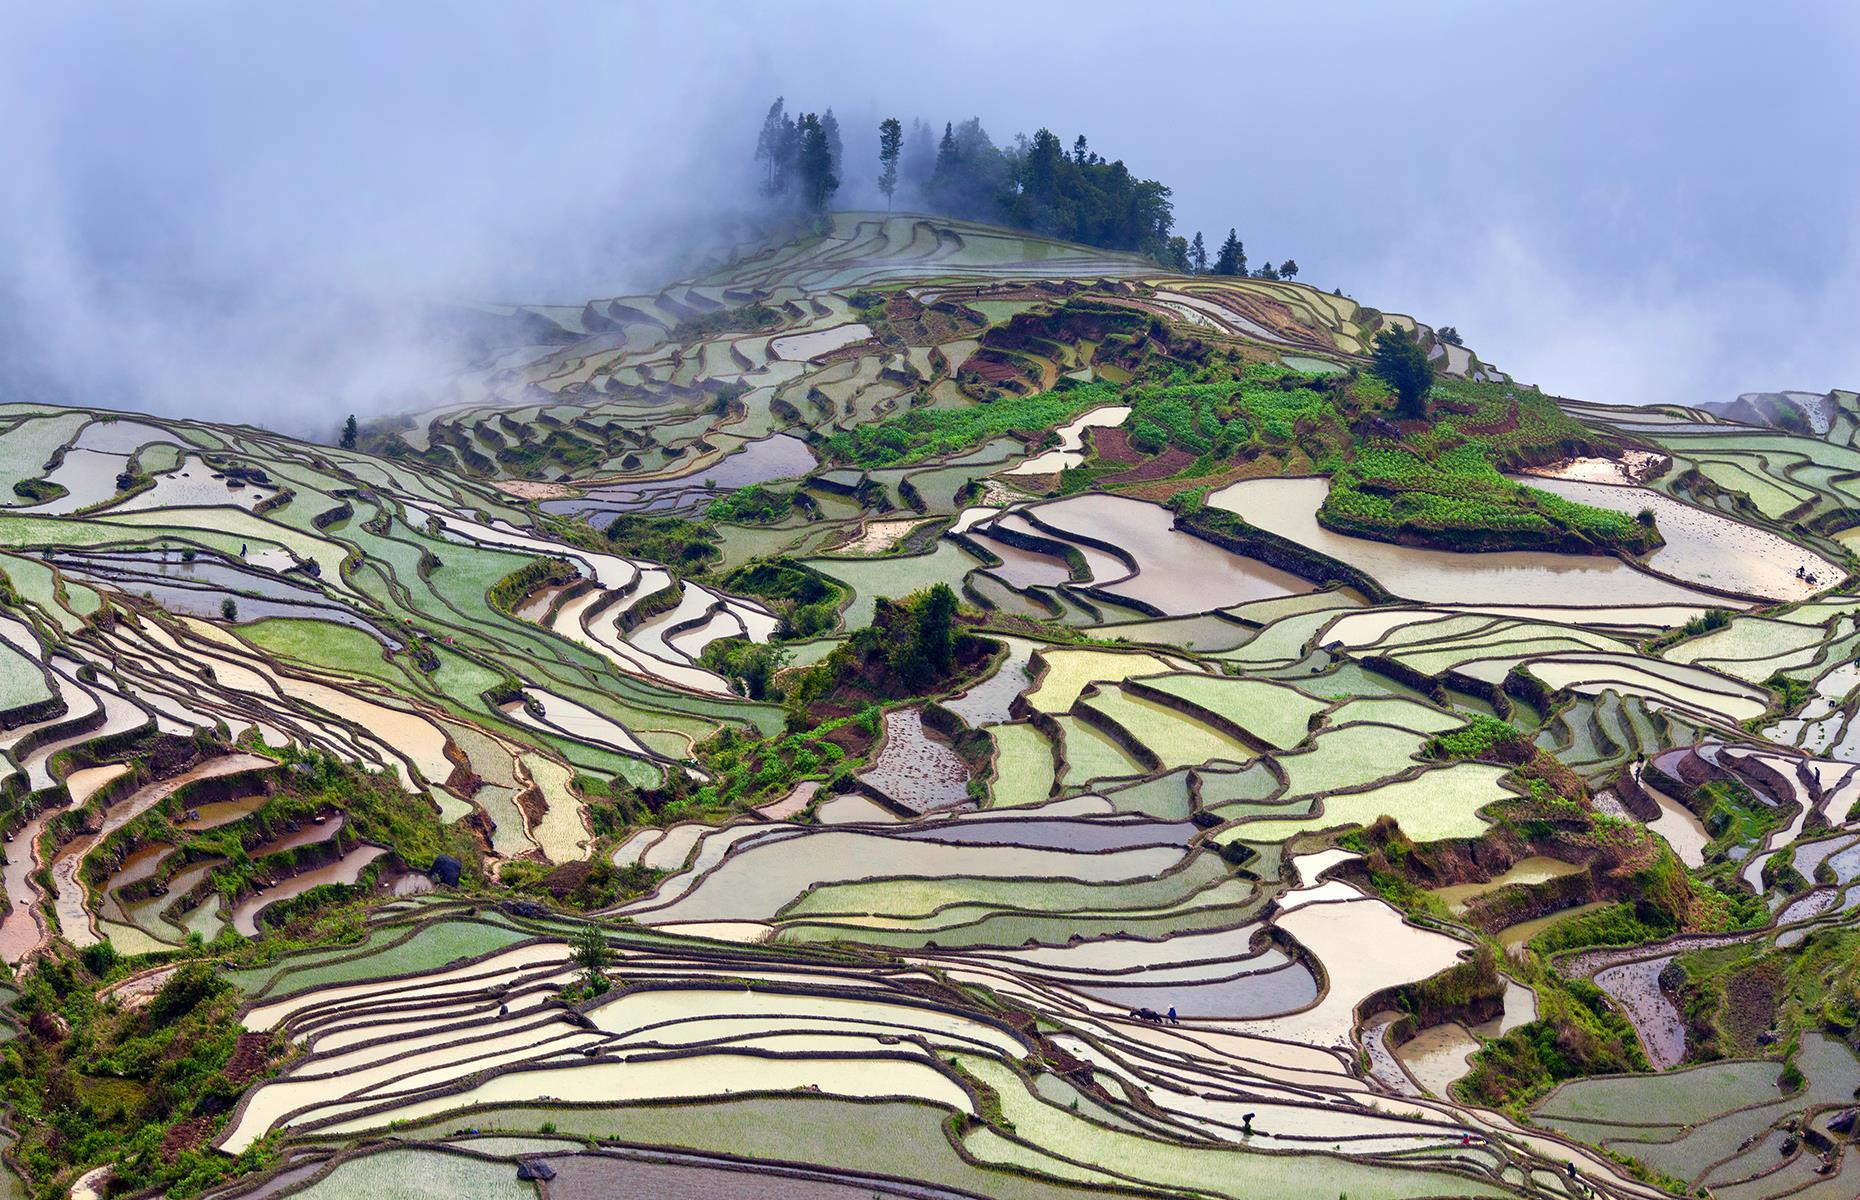 Slide 39 of 41: These vibrant rice terraces in China's Yuanyang County have been a UNESCO World Heritage Site since 2013 and no wonder. Built on red-soil mountains over 2,500 years ago and reaching up to 6,561 feet (1,999m) above sea level, the rice terraces fill with cascading spring water from the forests above, creating a unique scenery in shades of green and brown.